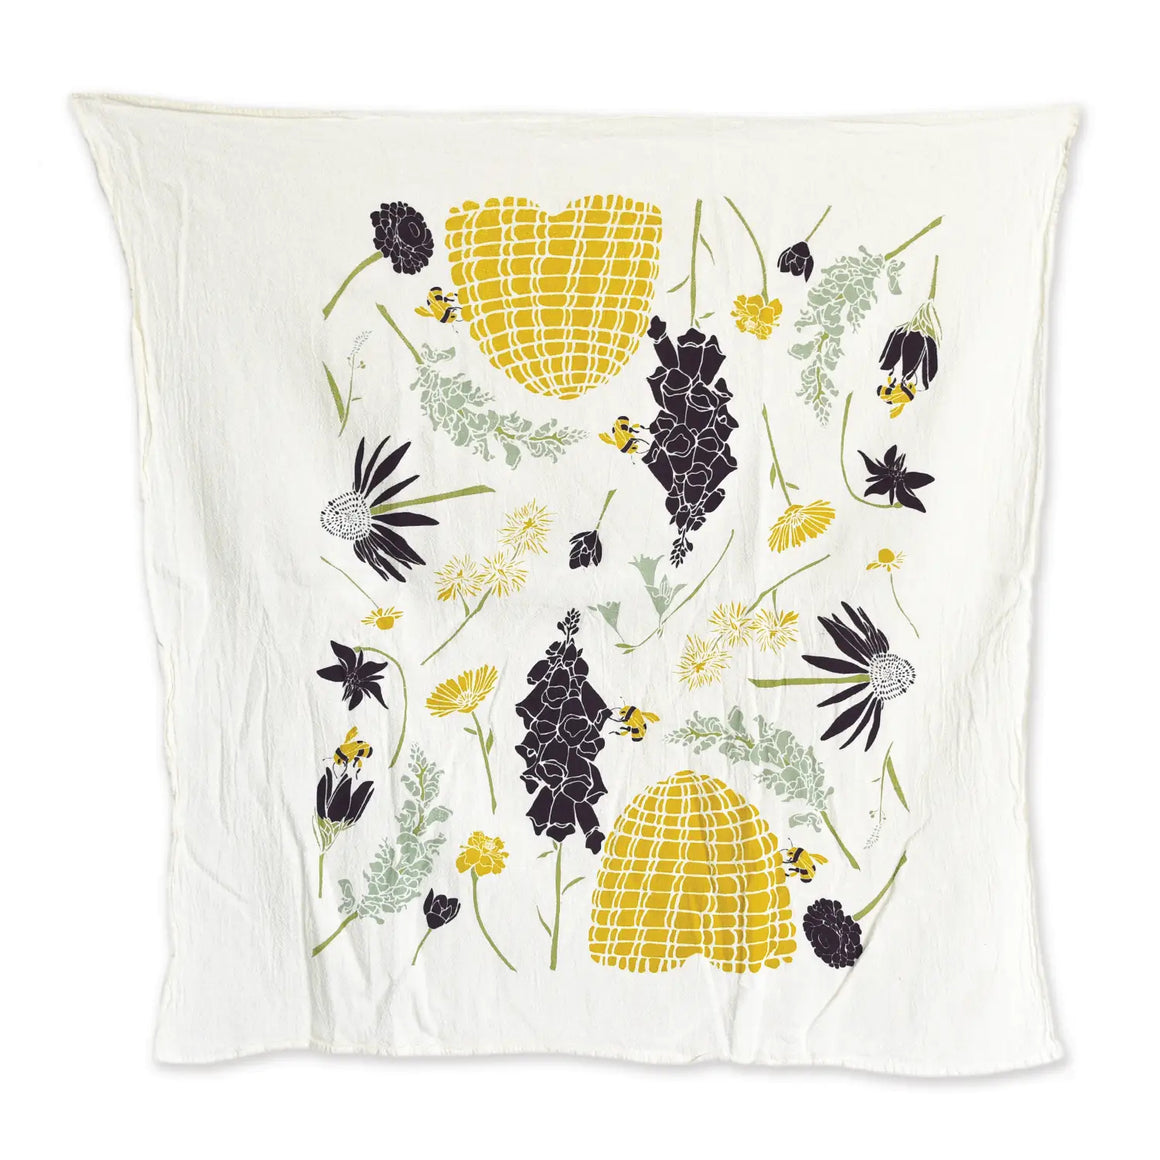 Cotton Tea Towel - Honeybee - $16